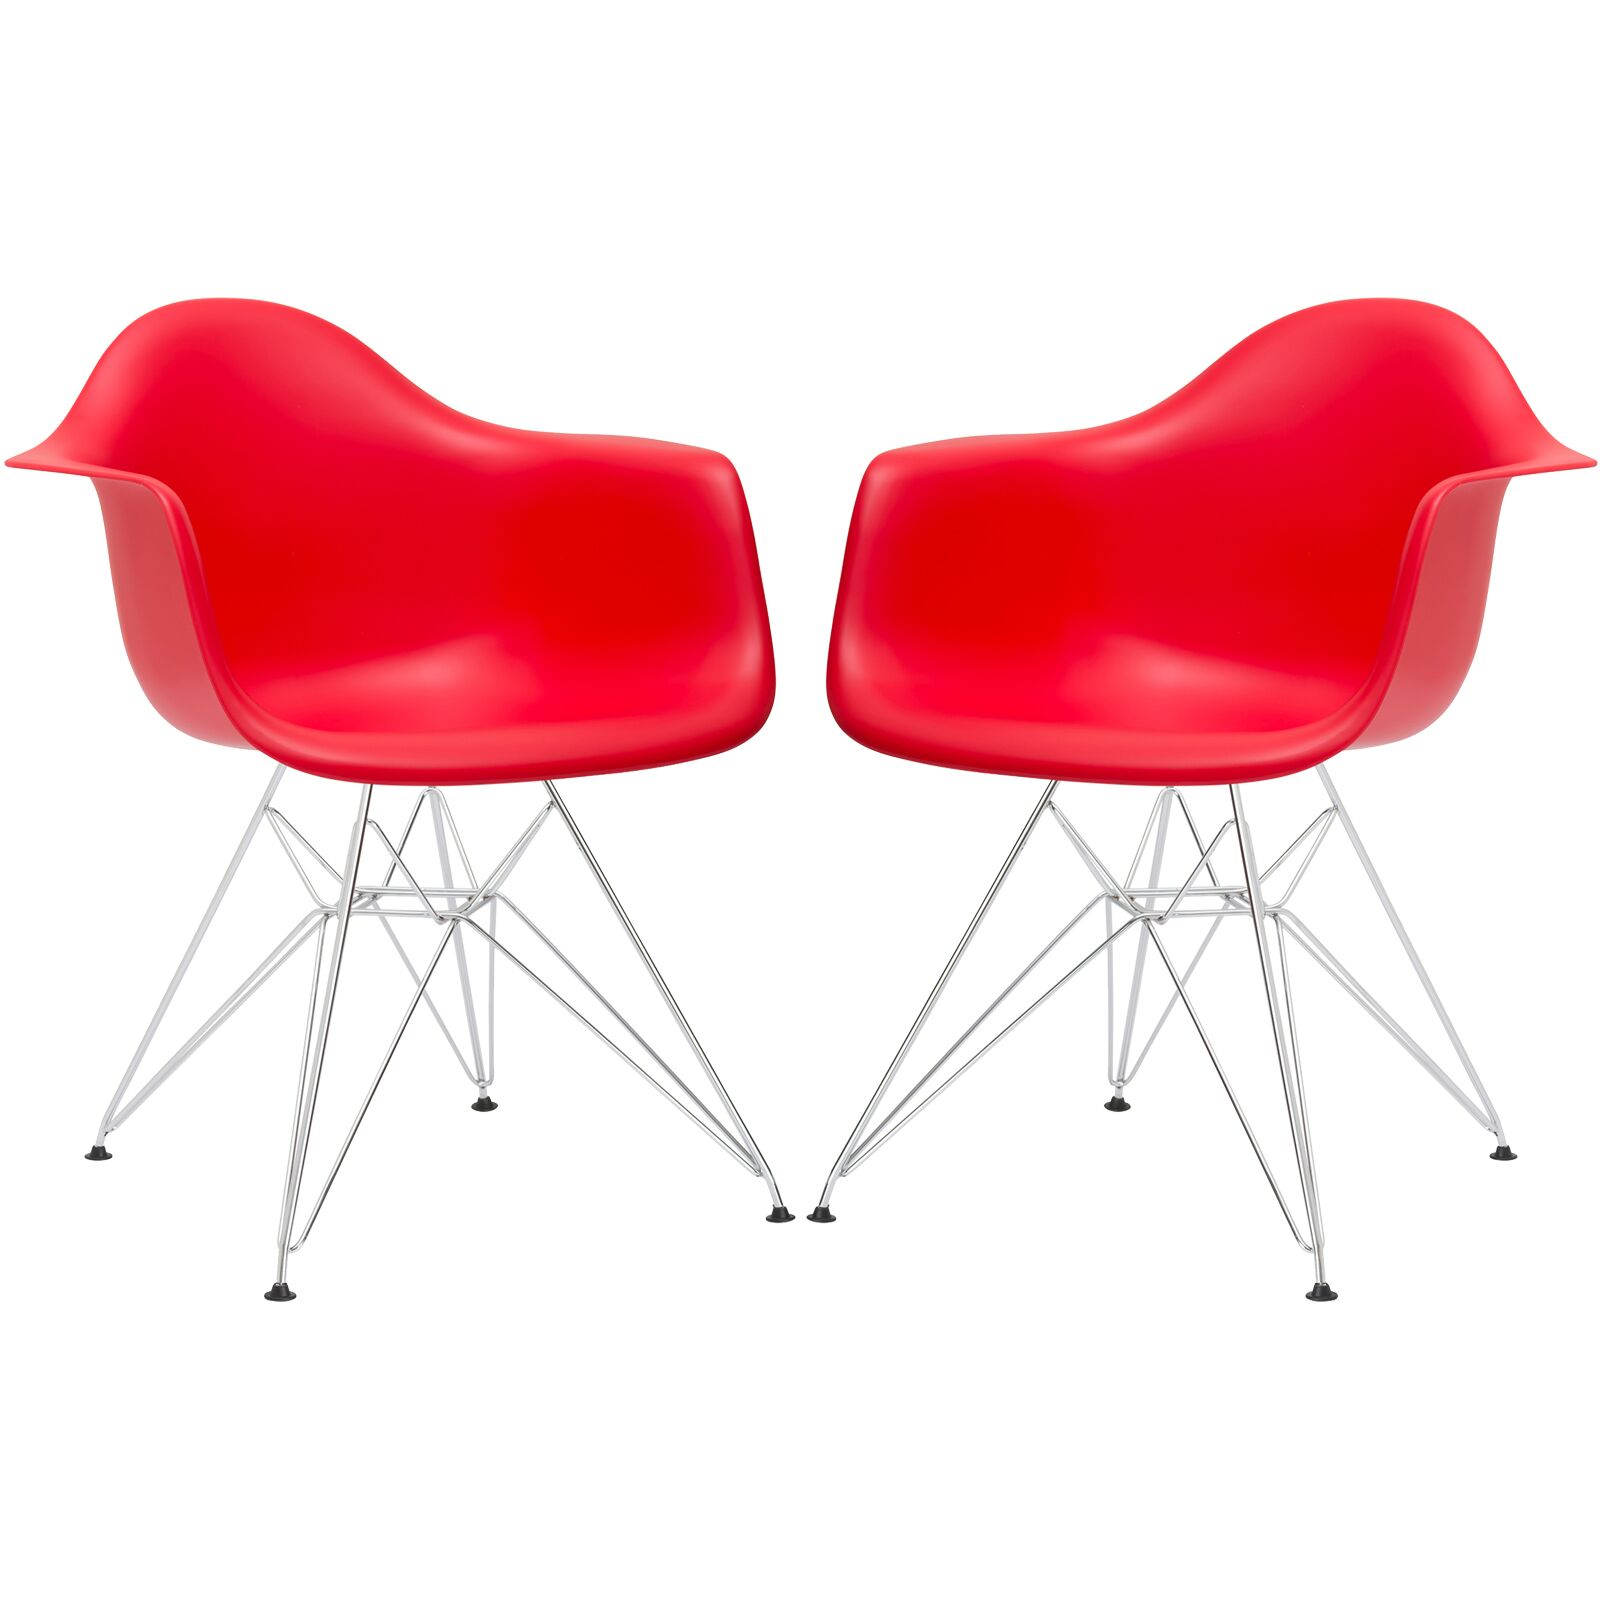 Padget Arm Chair (Set of 2) Upholstery: Red, Leg Finish: Chrome